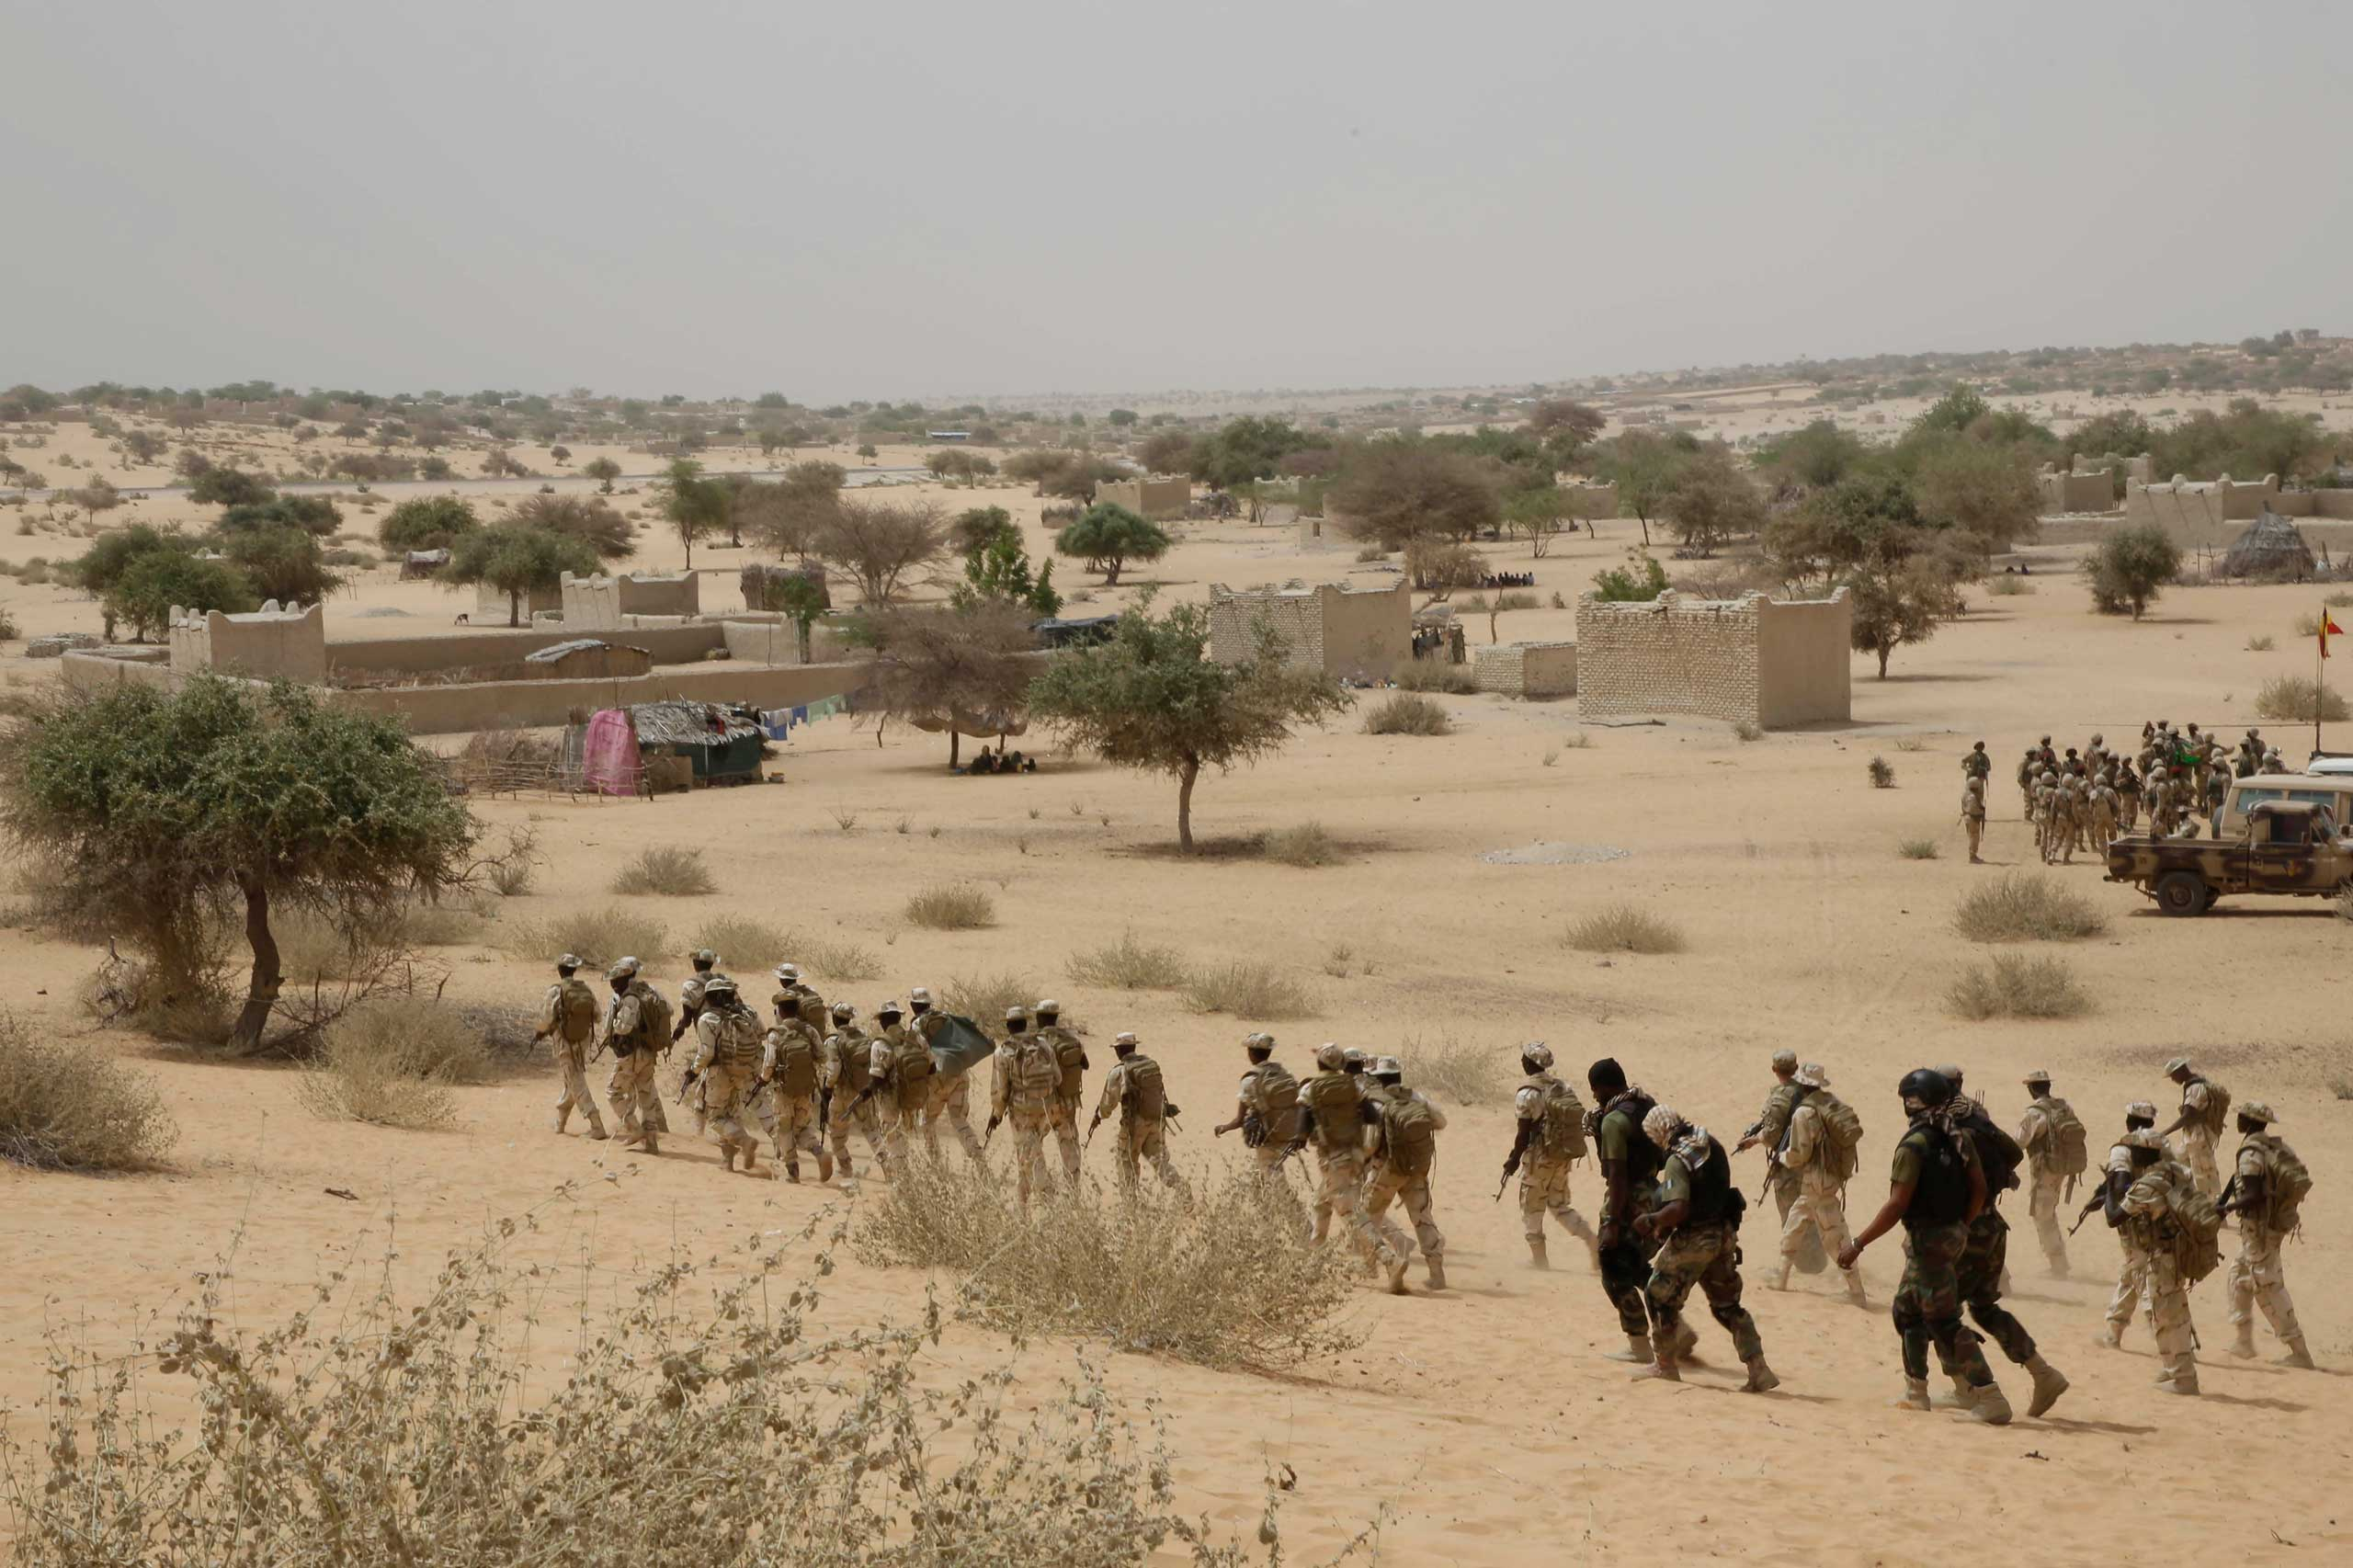 Chadian troops participate along with Nigerian special forces in an exercise in Mao, Chad on March 7, 2015.